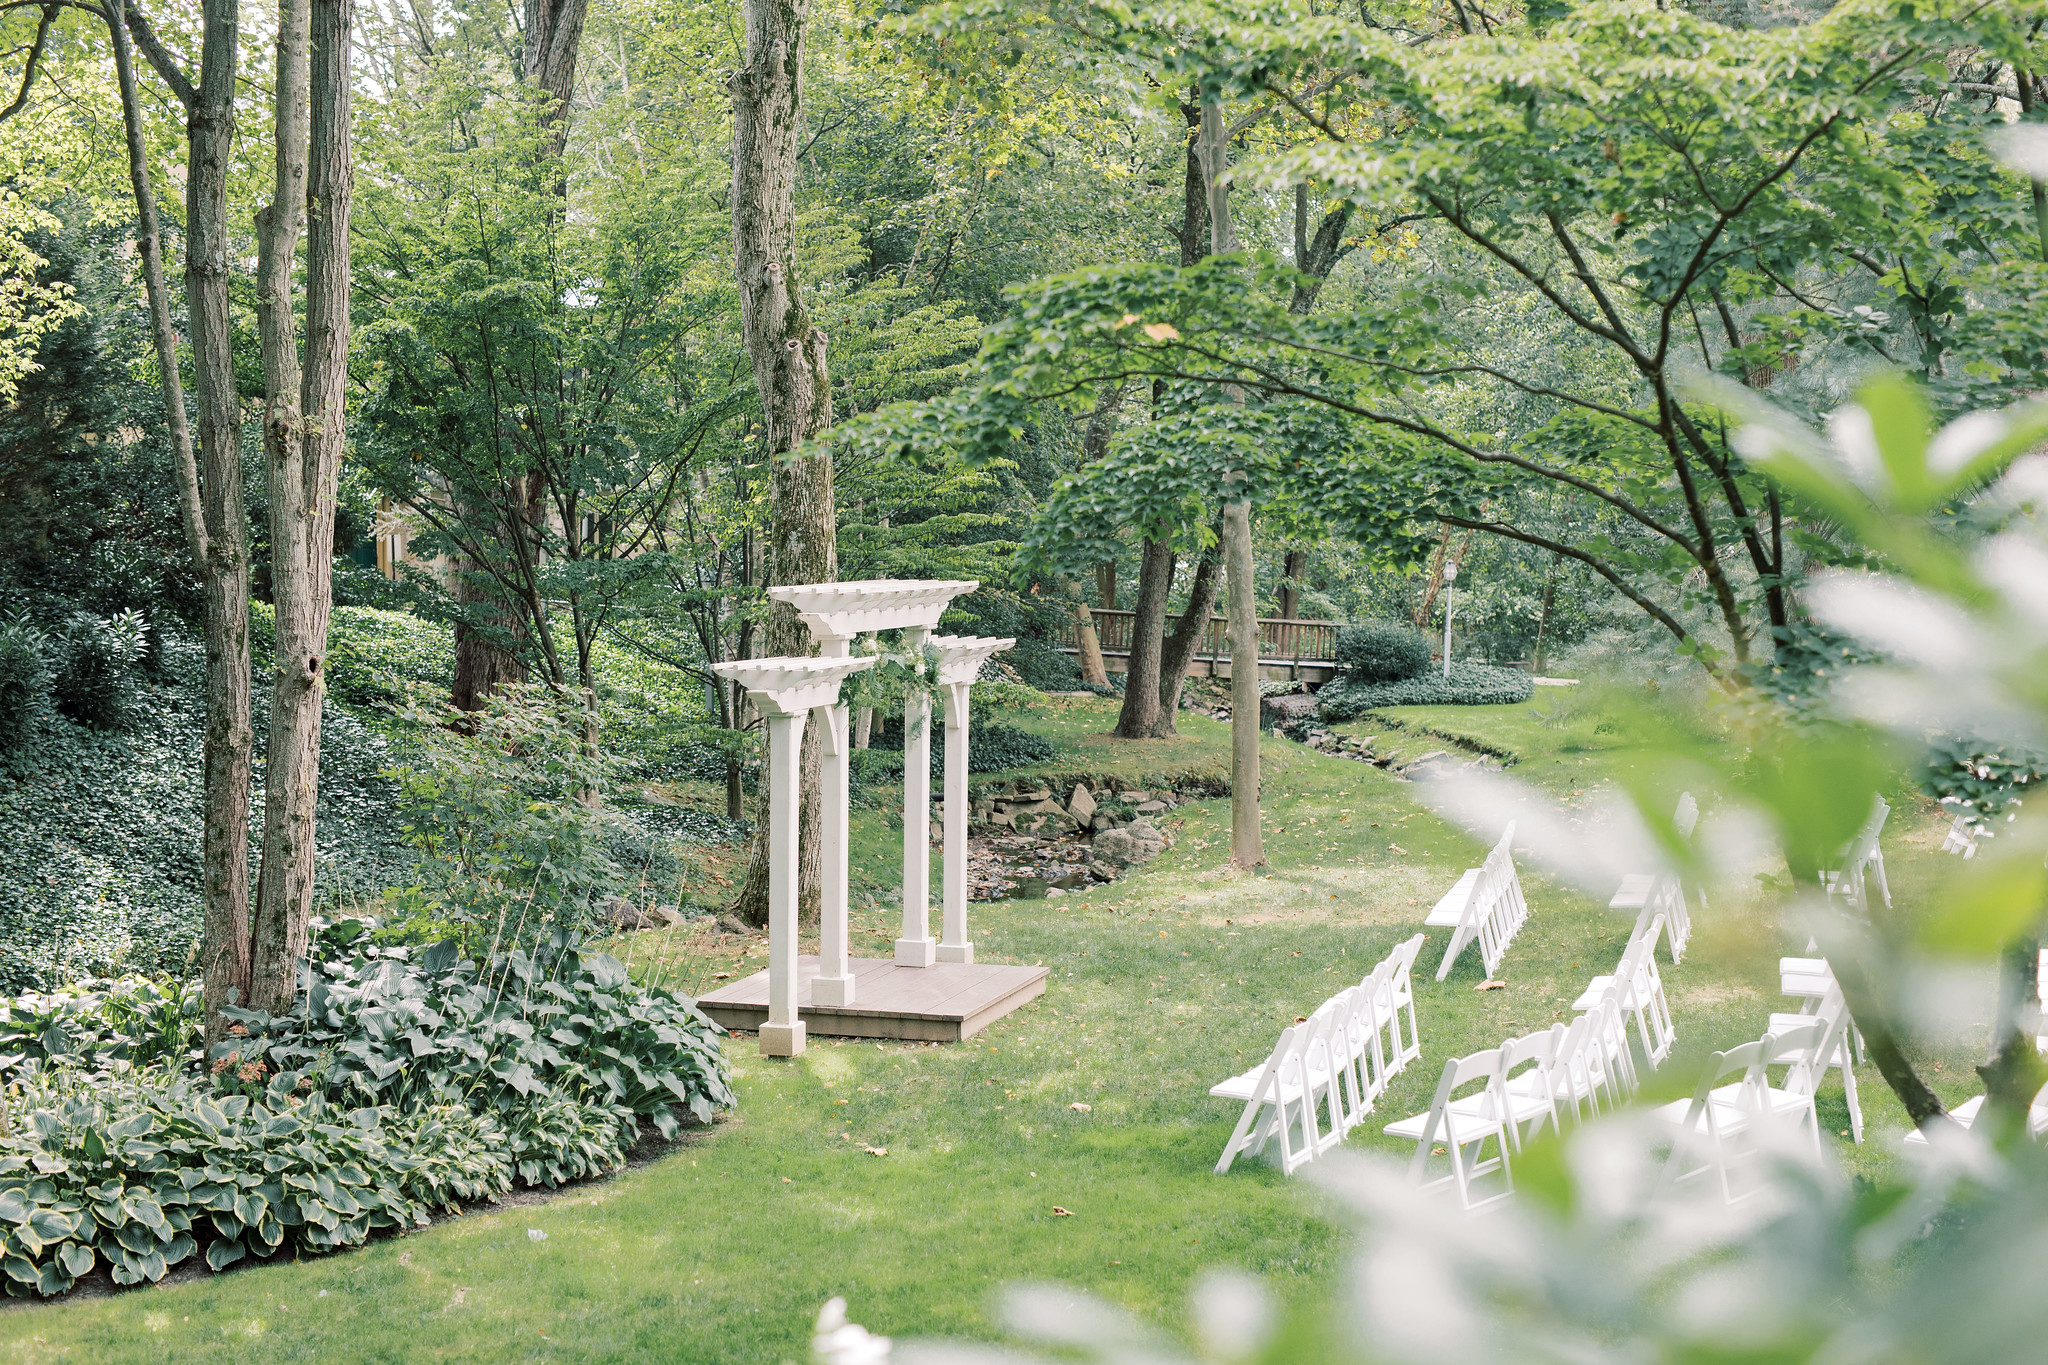 Outdoor alter amidst greenery at Pomme Radnor.